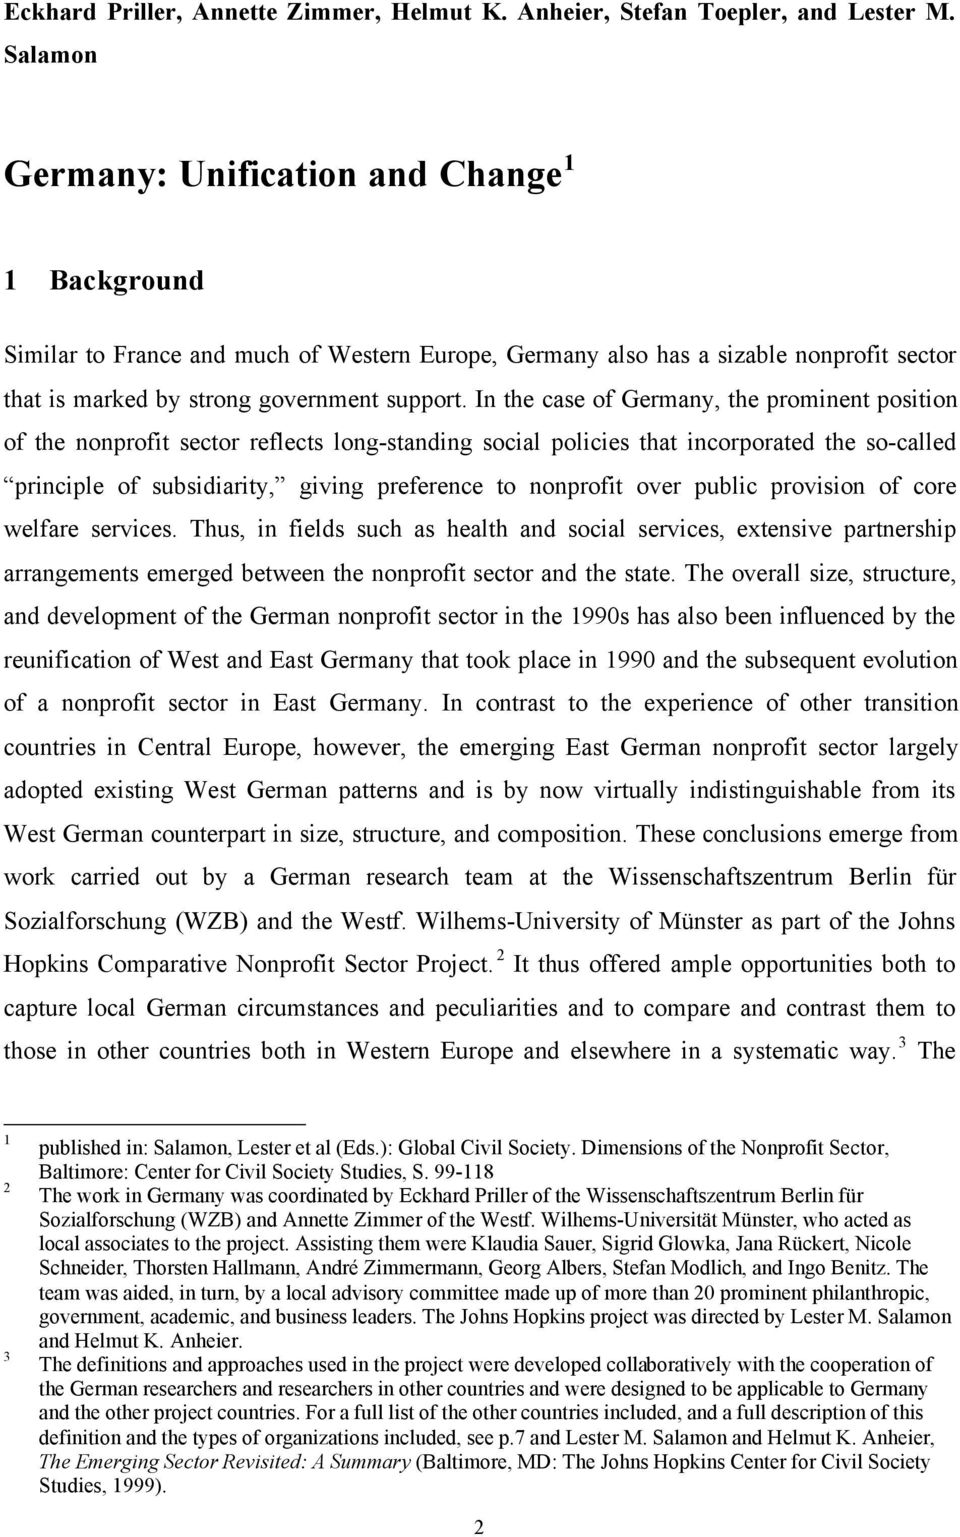 In the case of Germany, the prominent position of the nonprofit sector reflects long-standing social policies that incorporated the so-called principle of subsidiarity, giving preference to nonprofit